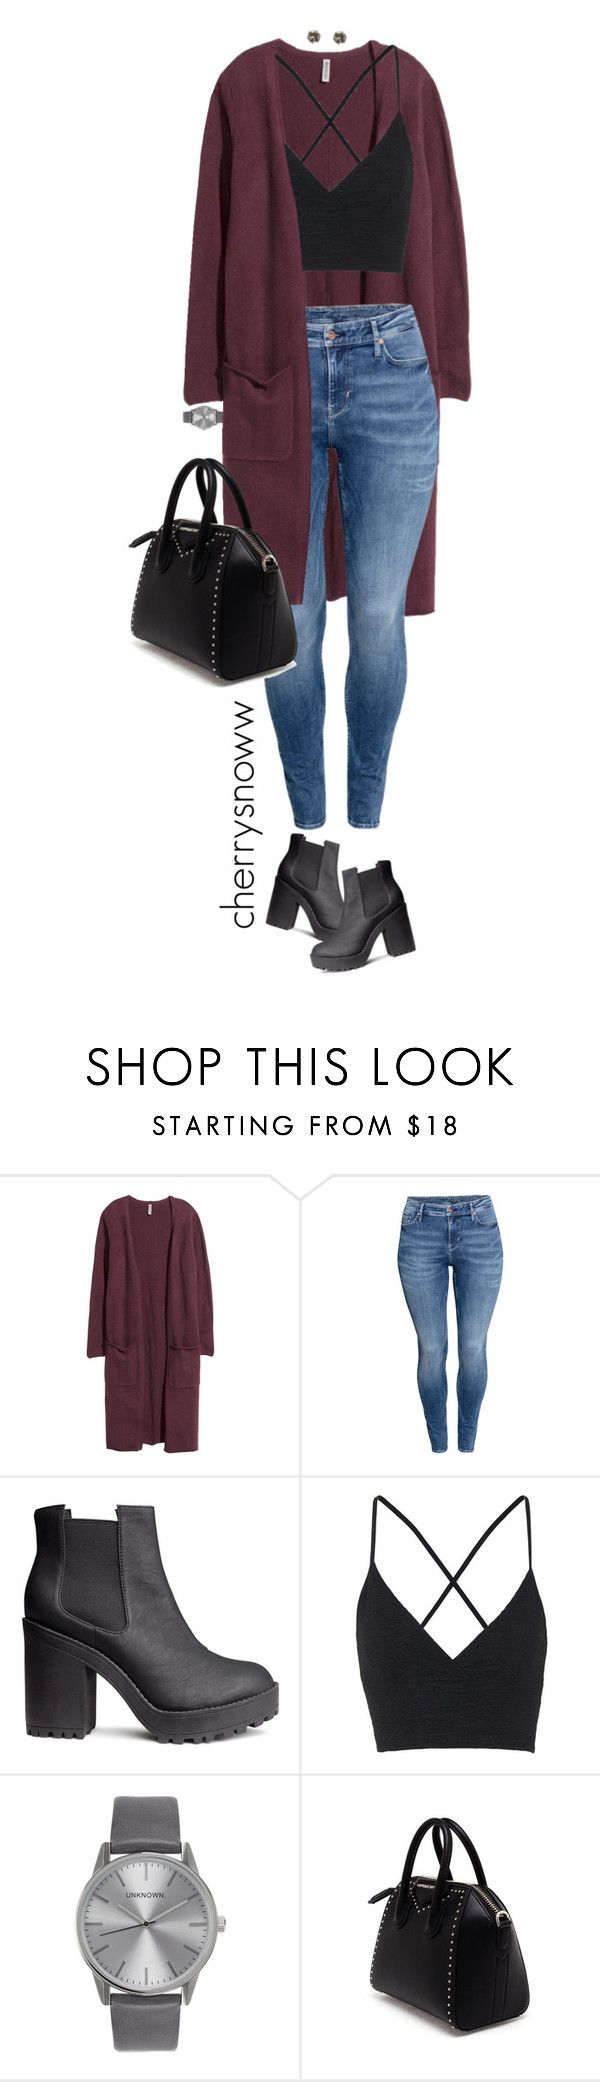 """Casual grunge fall outfit"" by cherrysnoww ❤ liked on Polyvore featuring H&M, Topshop, Givenchy and Snö Of Sweden"